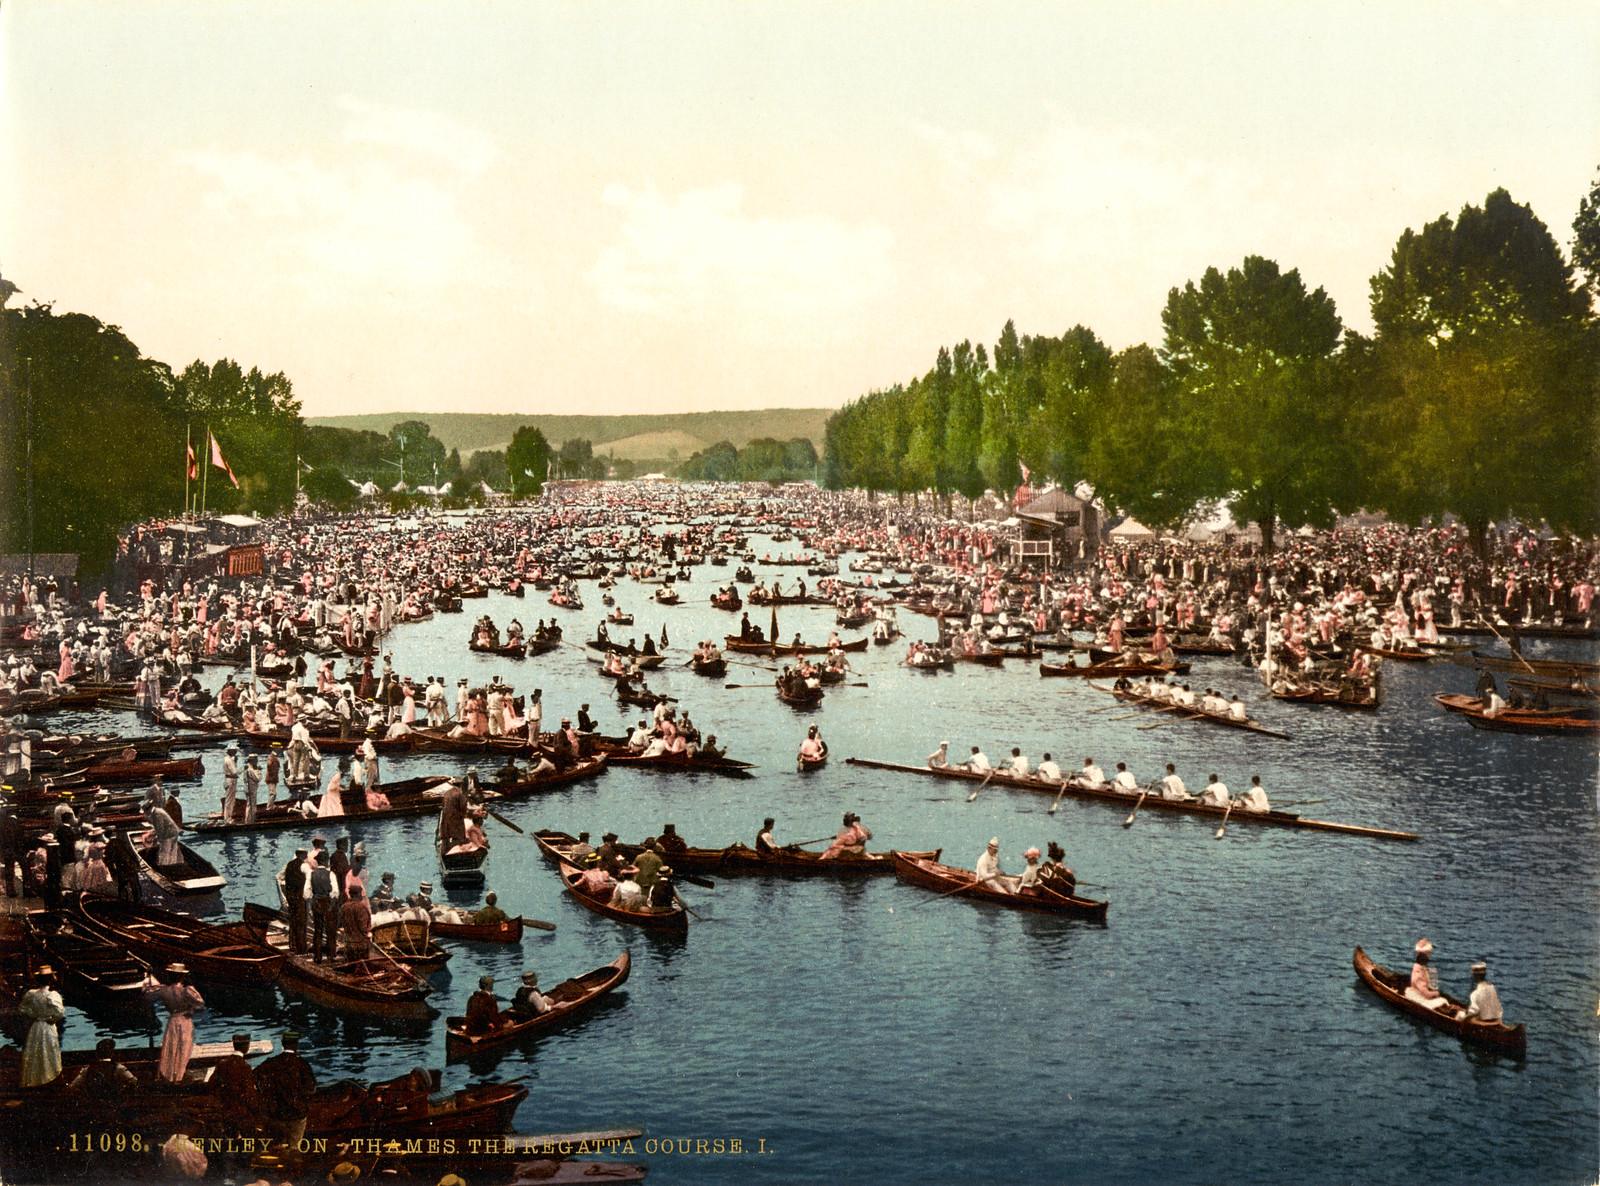 The Regatta course, Henley Regatta, Henley-on-Thames, between 1890 and 1900. Photochrom.